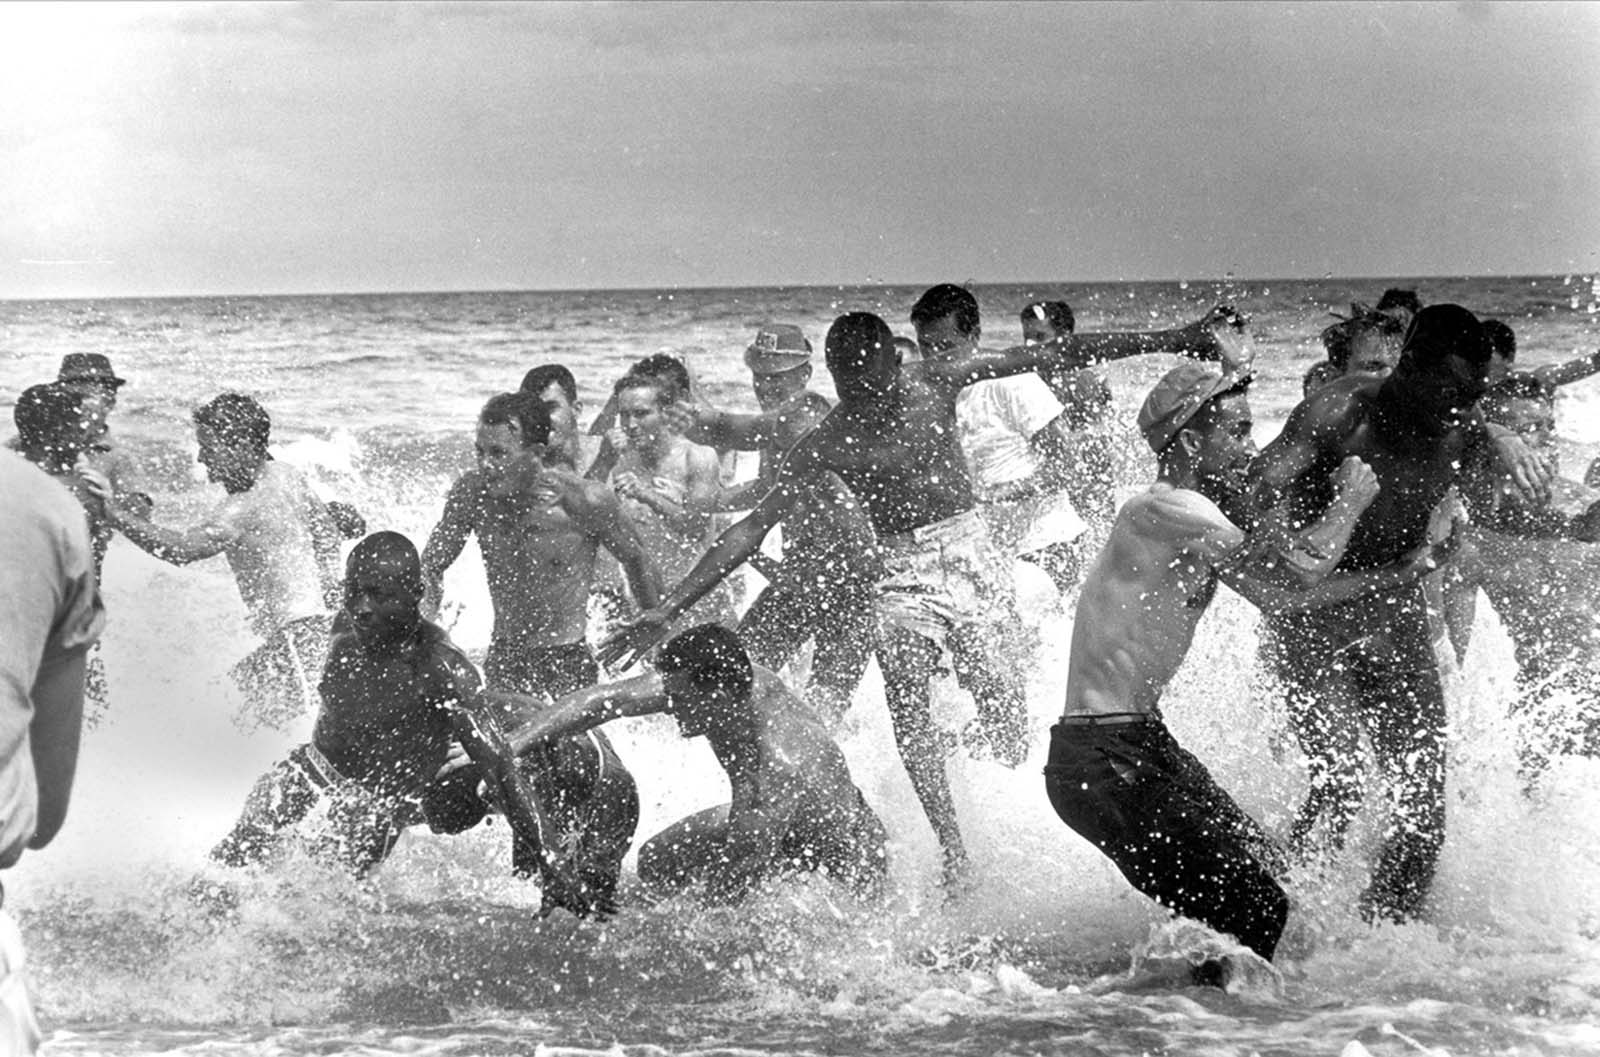 A group of white segregationists attack a group of blacks as they began to swim at the St. Augustine Beach, Florida, on June 25, 1964. Police moved in and broke up the fighting.